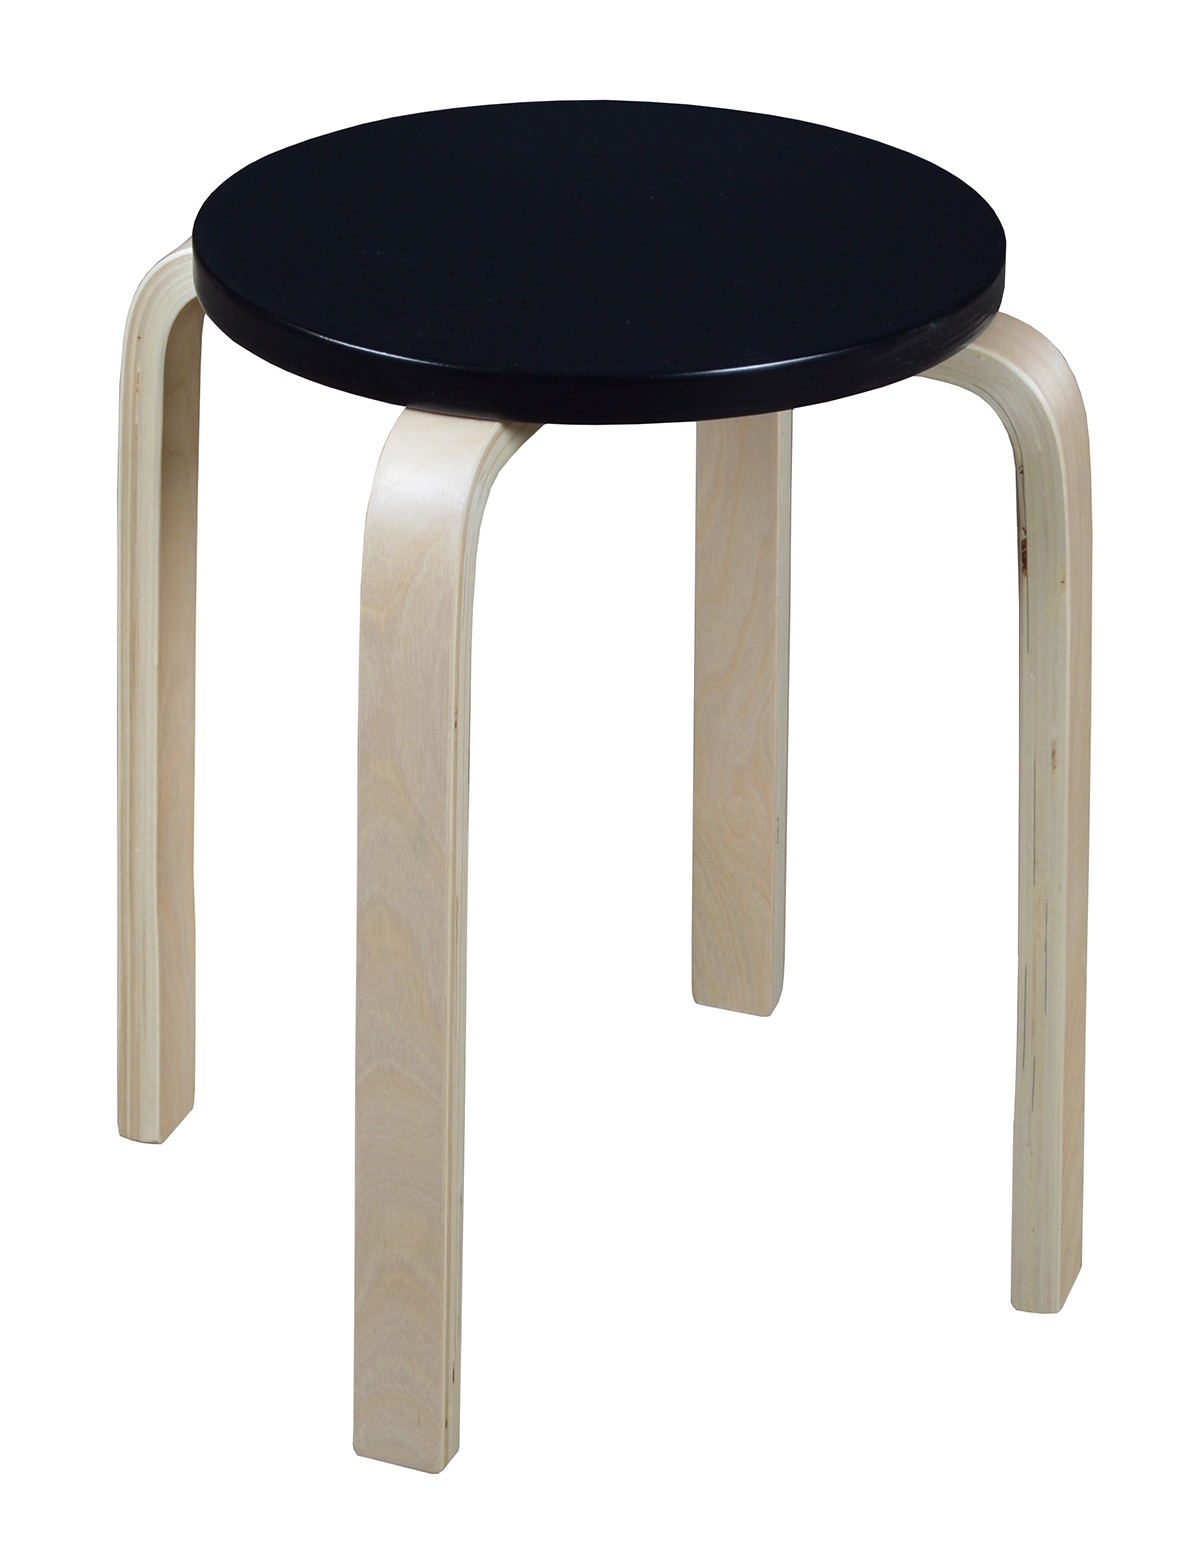 Niche Mia Bentwood Stool  Natural/black With Regard To Mia Bentwood Chairs (#13 of 20)